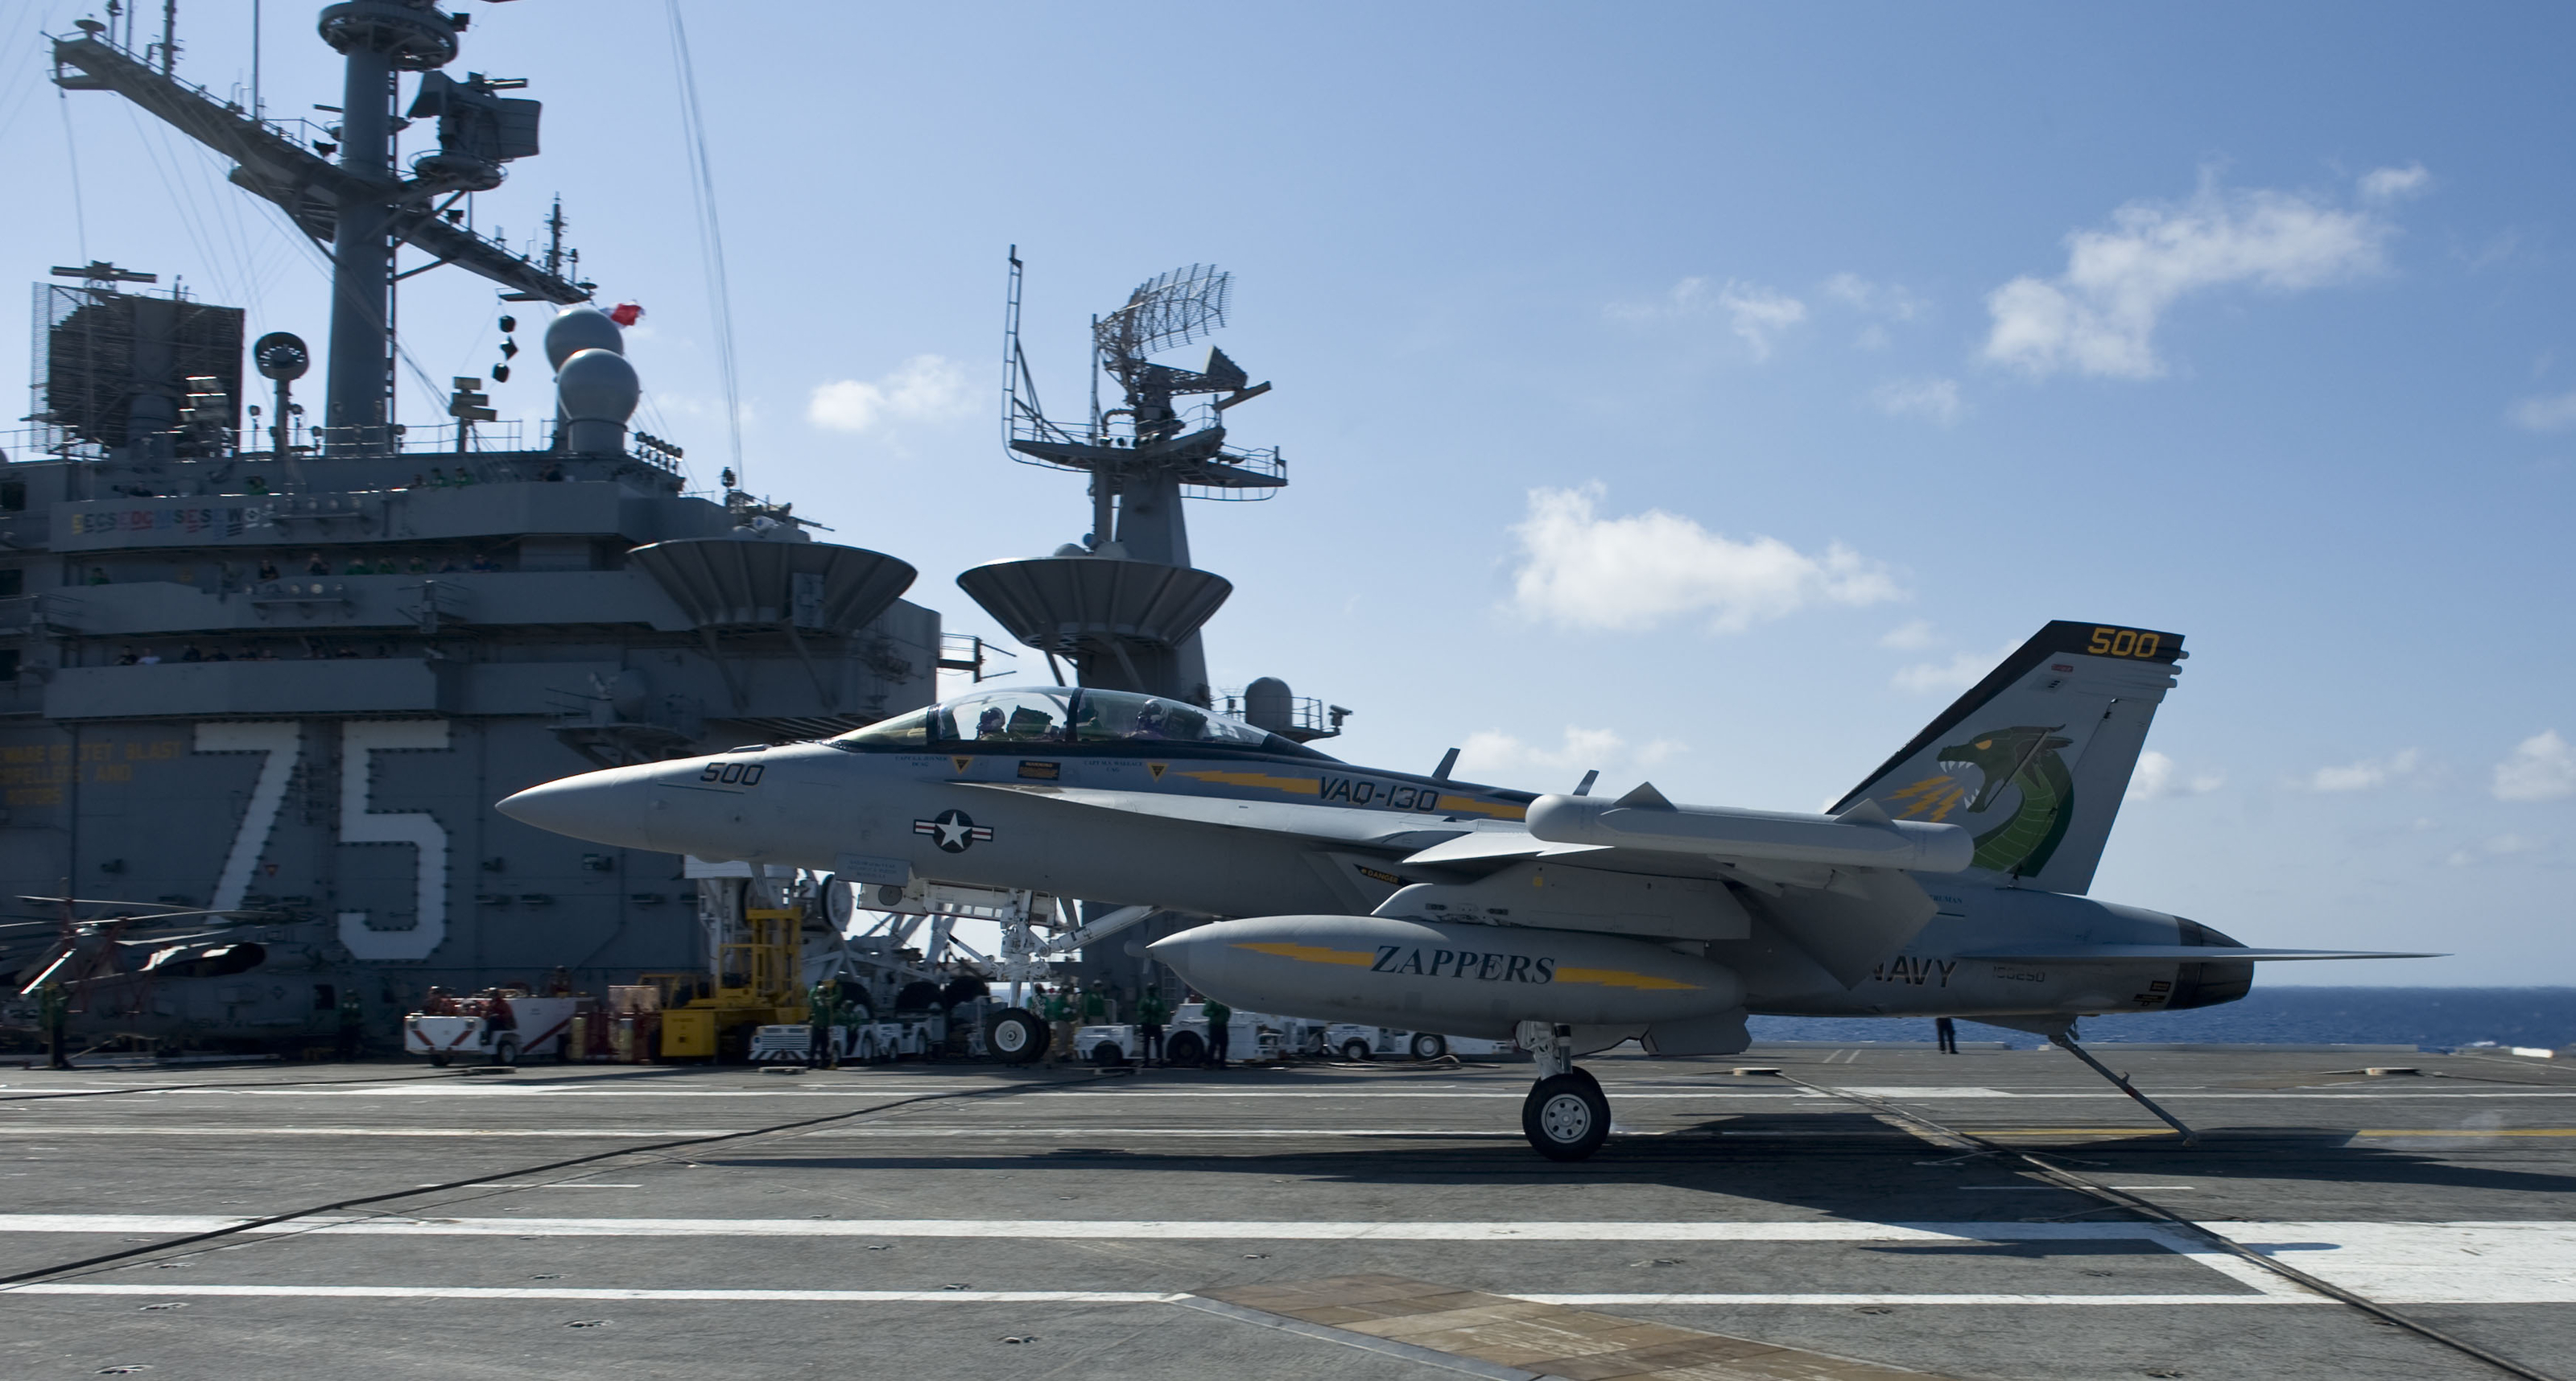 EA-18G Growler lands aboard the USS Harry S. Truman CVN 75